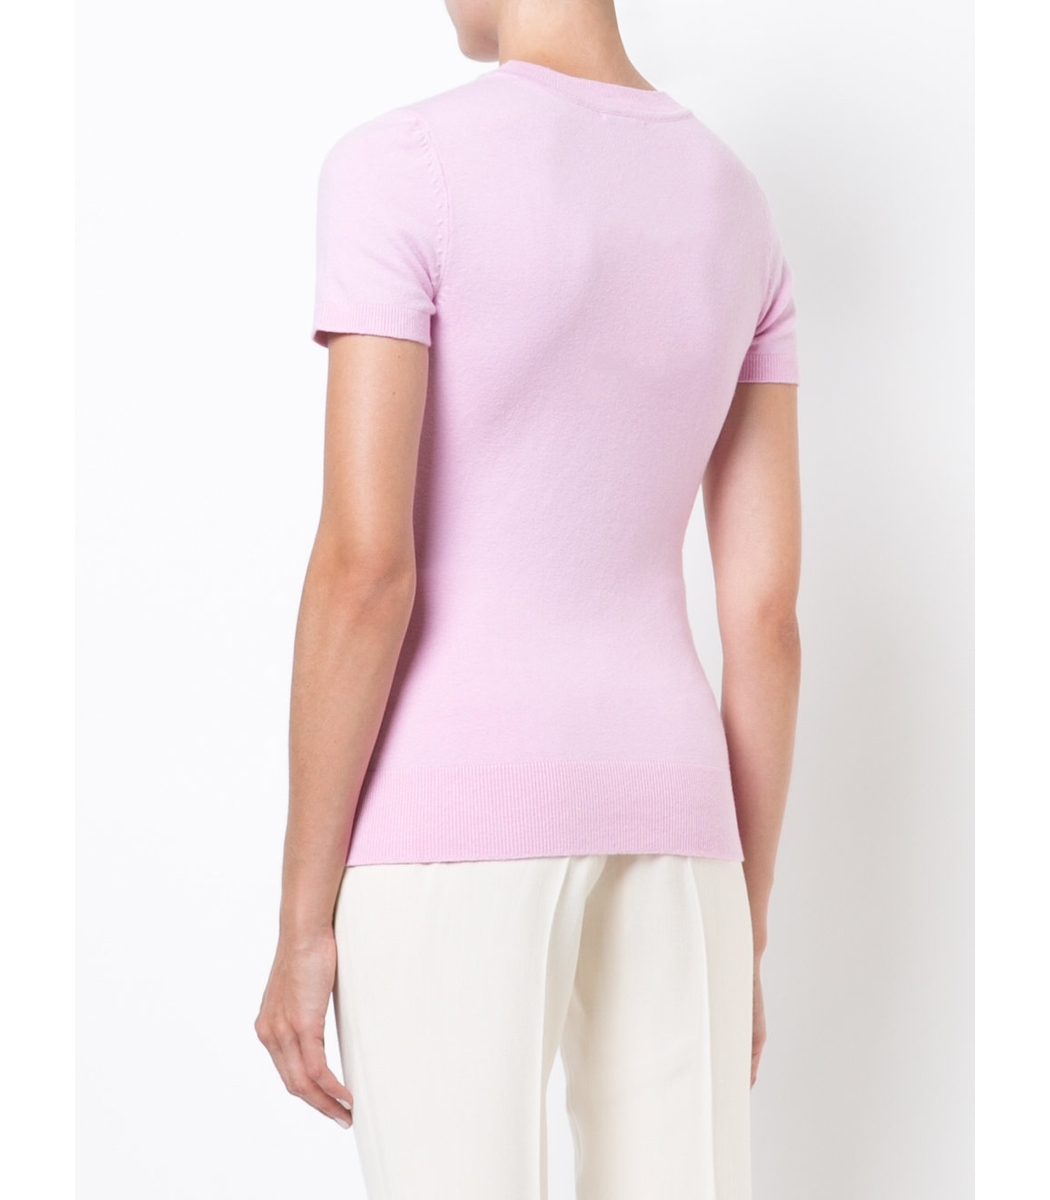 JoosTricot Short Sleeve Sweater - Pink Silk Sweater